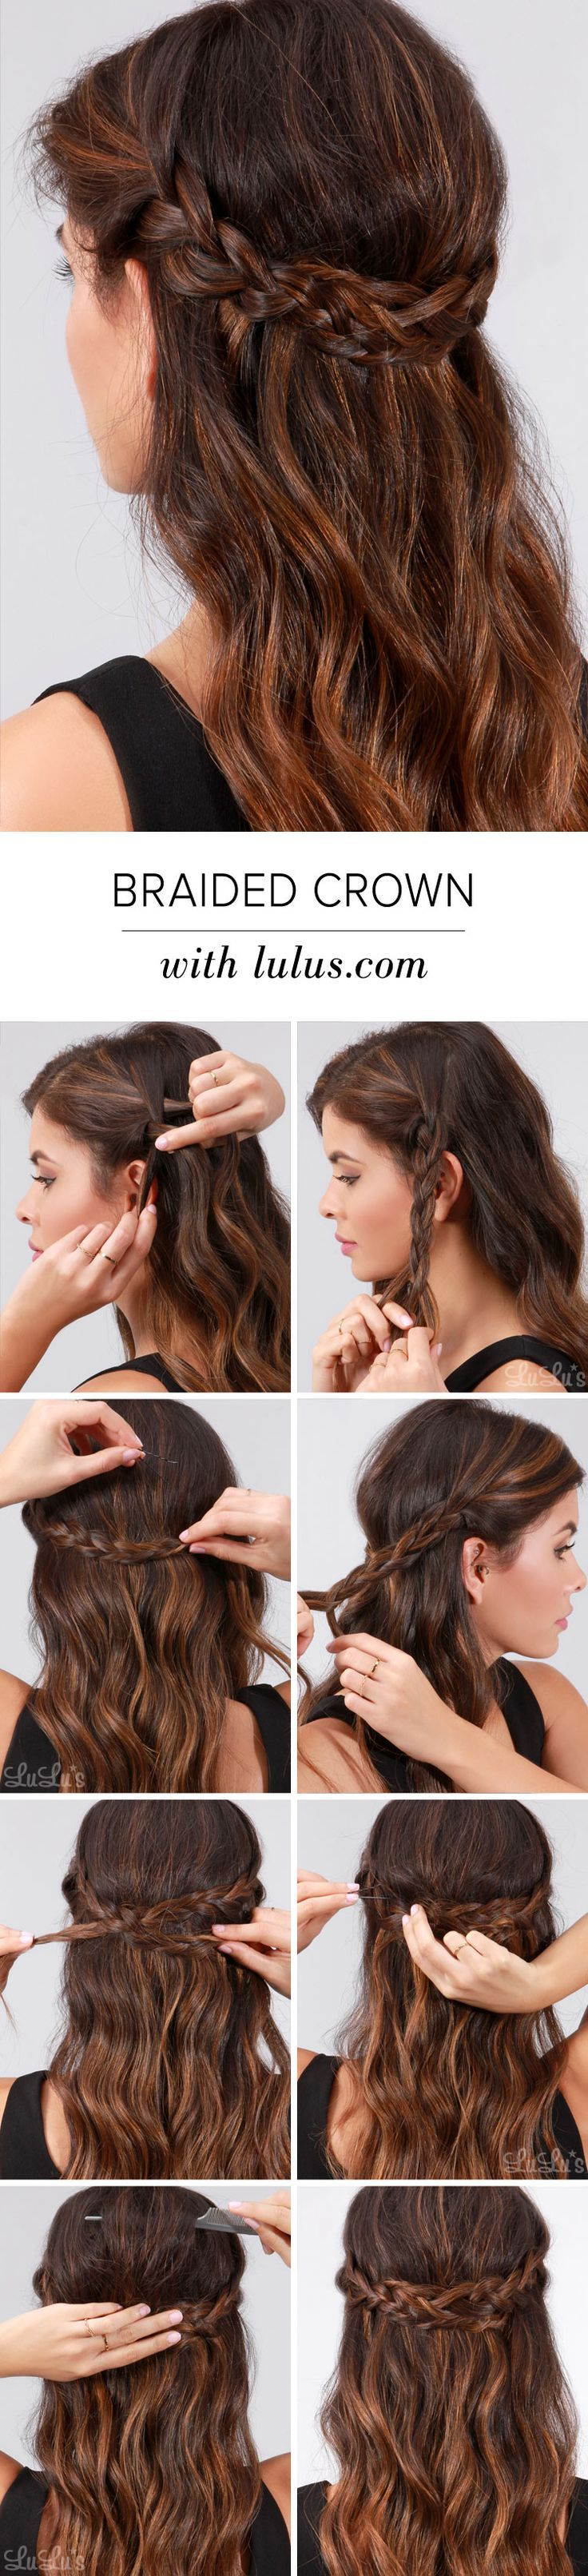 41 best Hair Ideas images on Pinterest